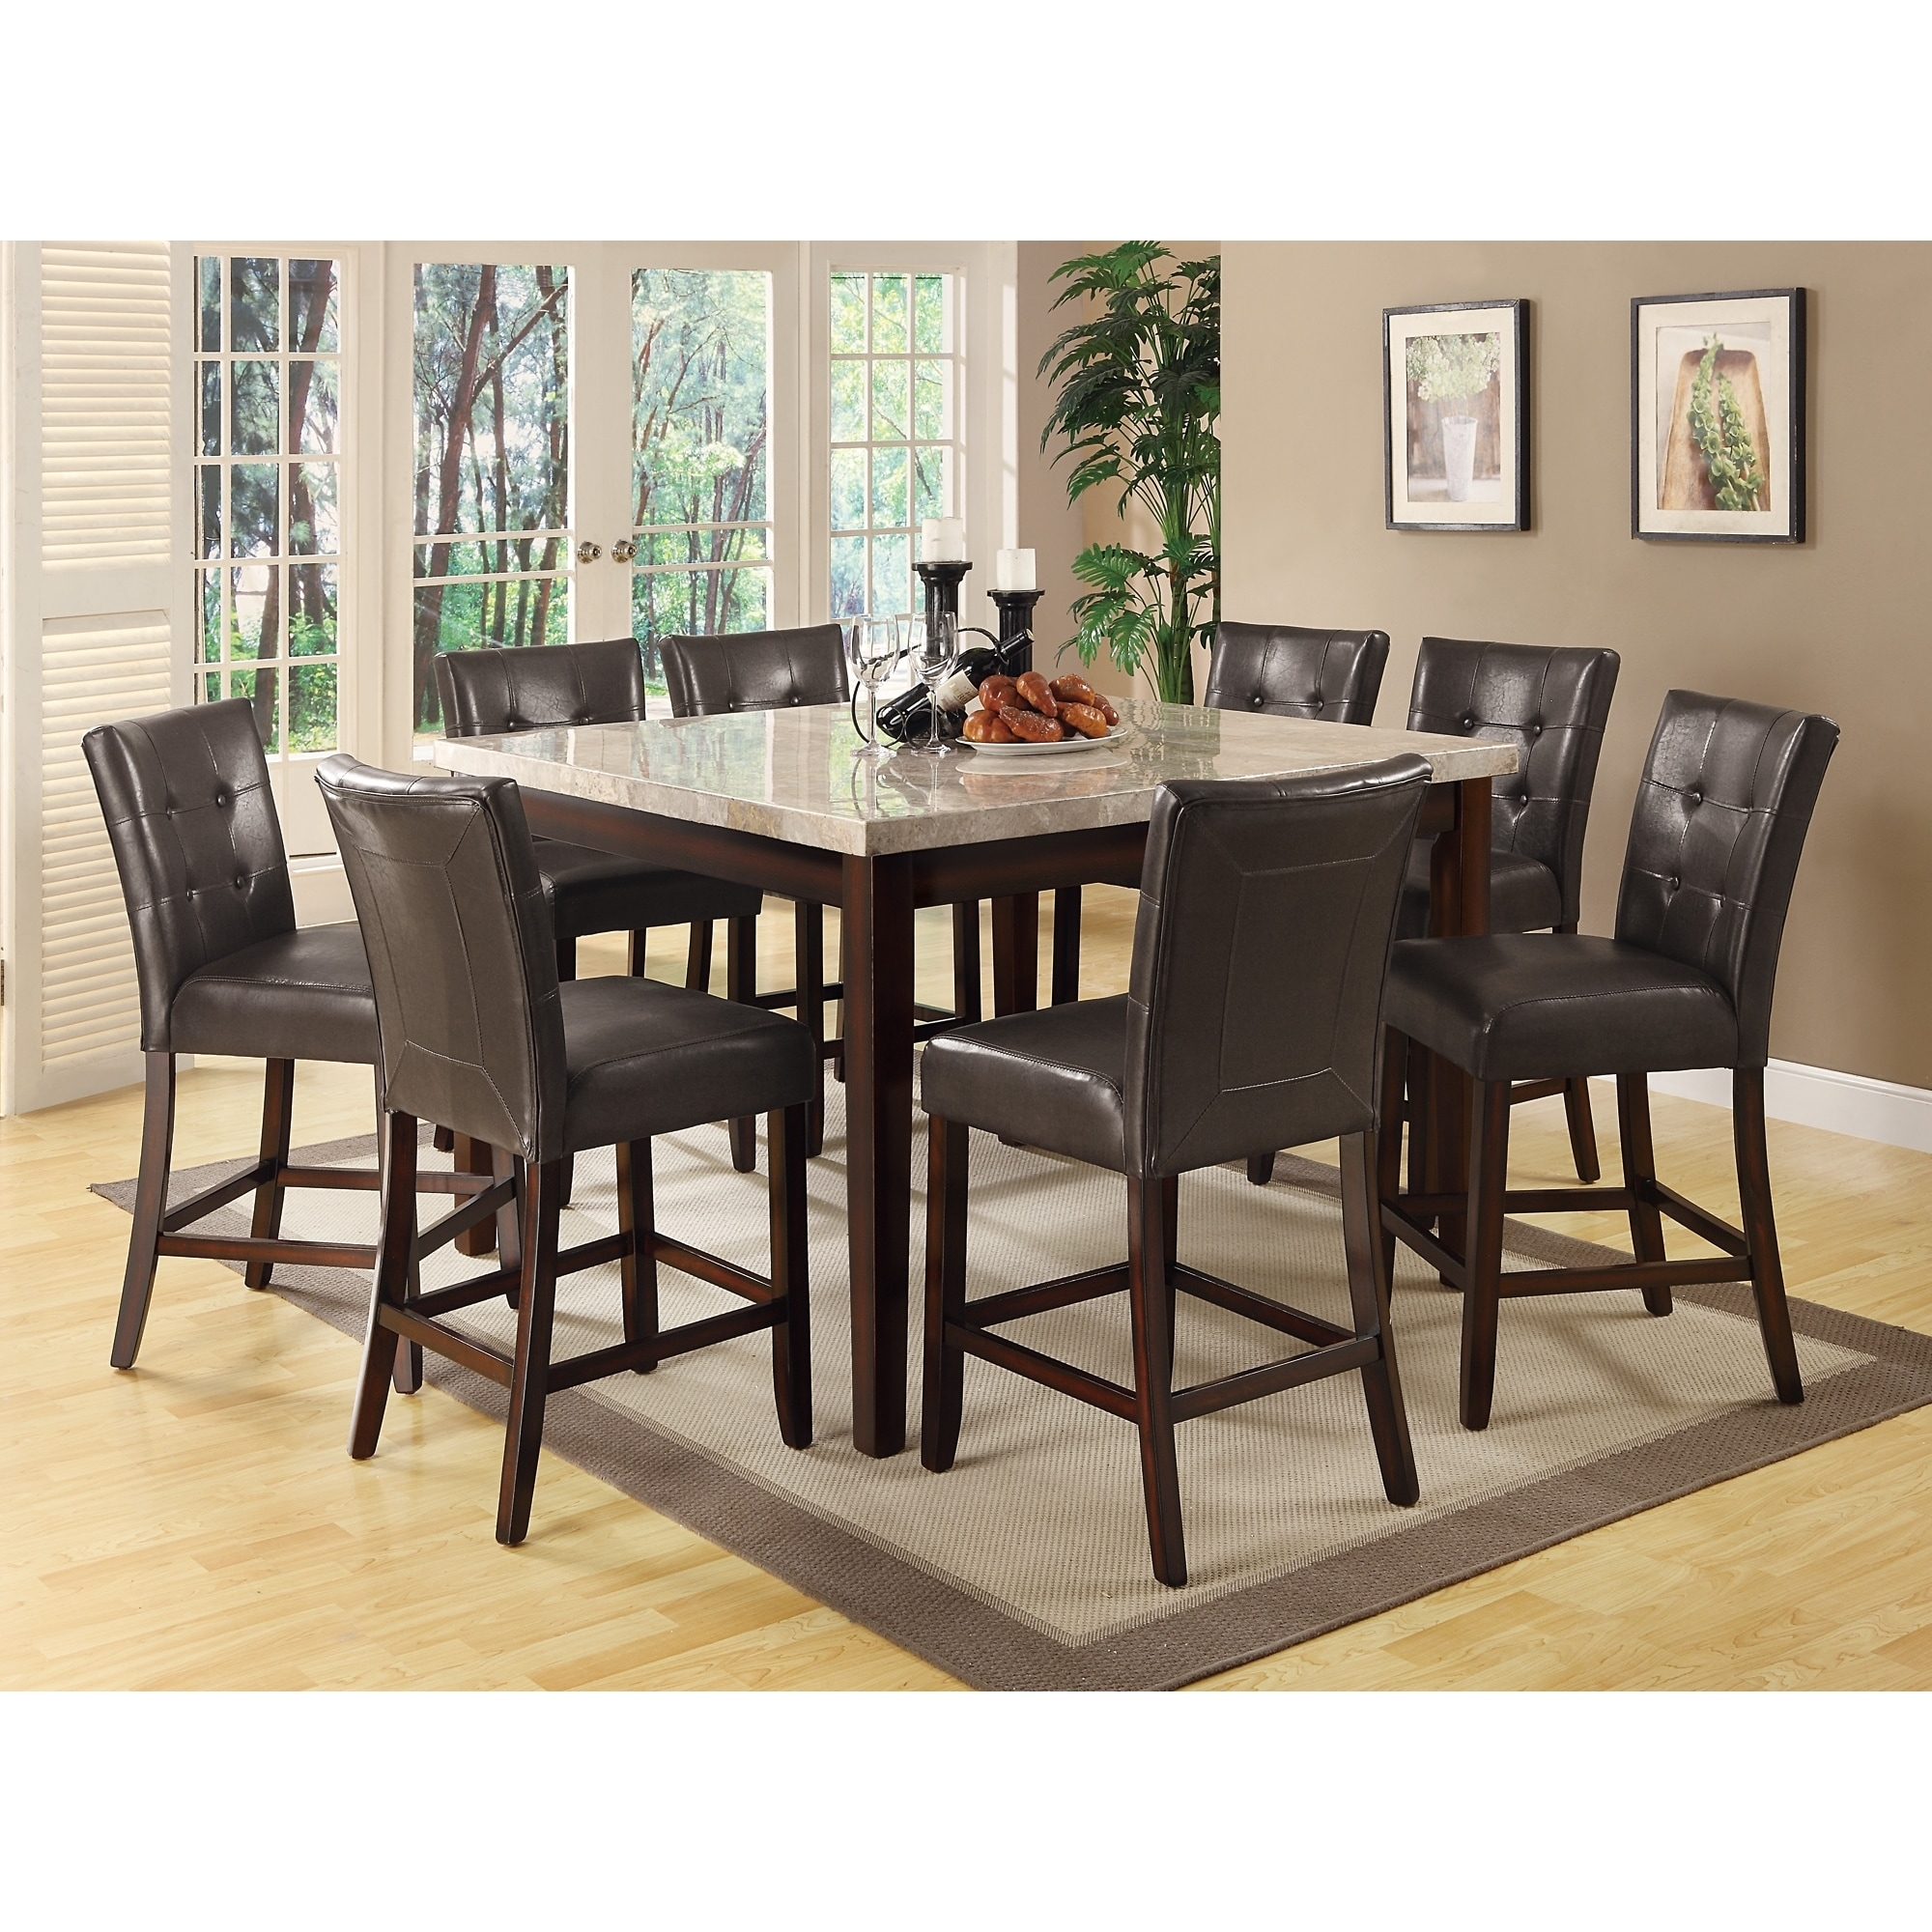 Camino Button Tufted Design Counter Height Dining Set wit...